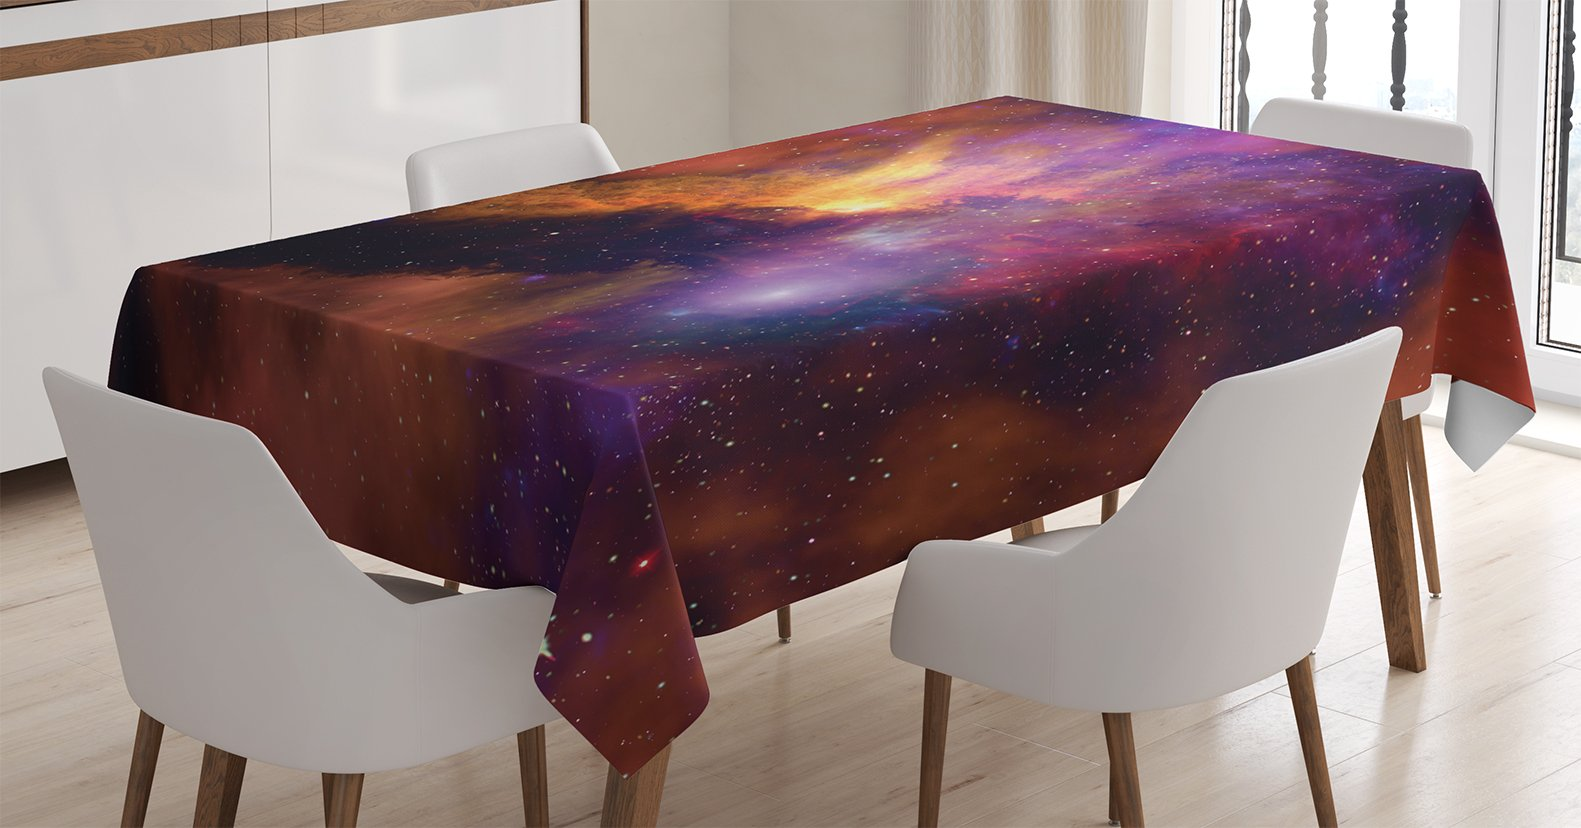 Ambesonne Space Decorations Tablecloth, Space Stars and Nebula Gas and Dust Cloud Celestial Solar Galacy System Print, Rectangular Table Cover for Dining Room Kitchen, 60x84 Inches, Purple Red Orange